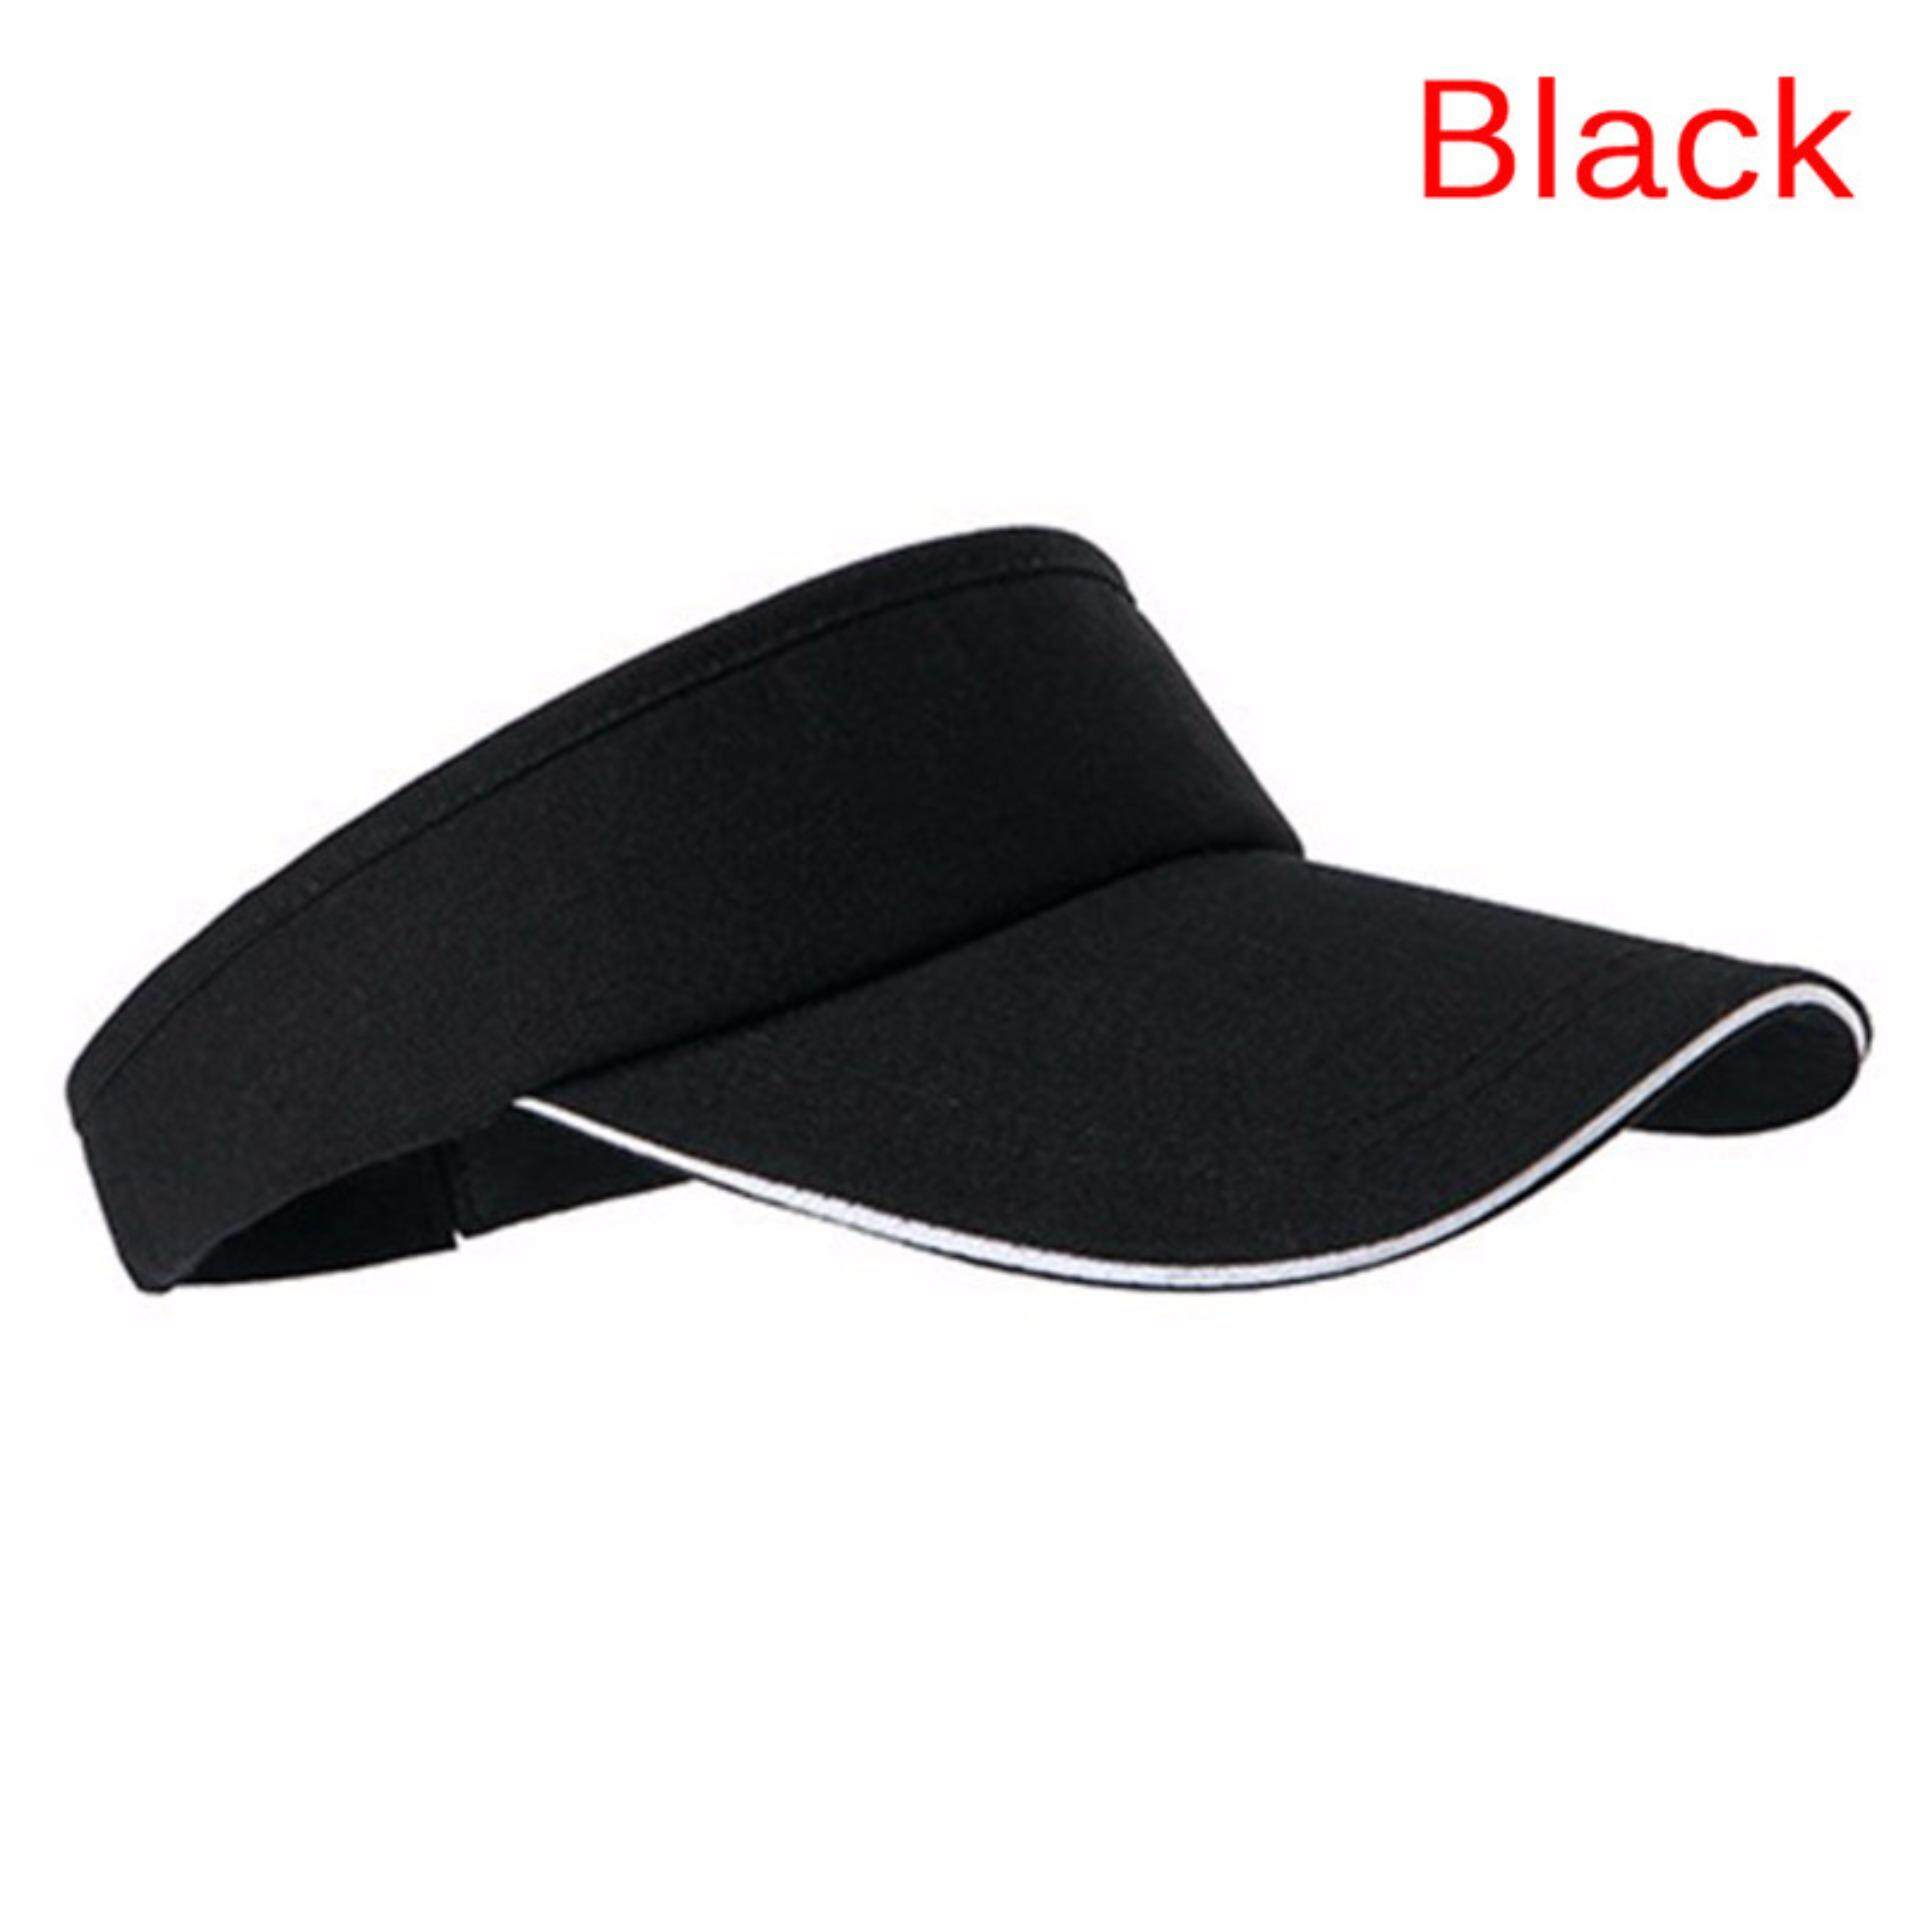 6fcb6afdf1a Adjustable Unisex Men Women Plain Sun Visor Sport Golf Tennis Breathable  Cap Hat